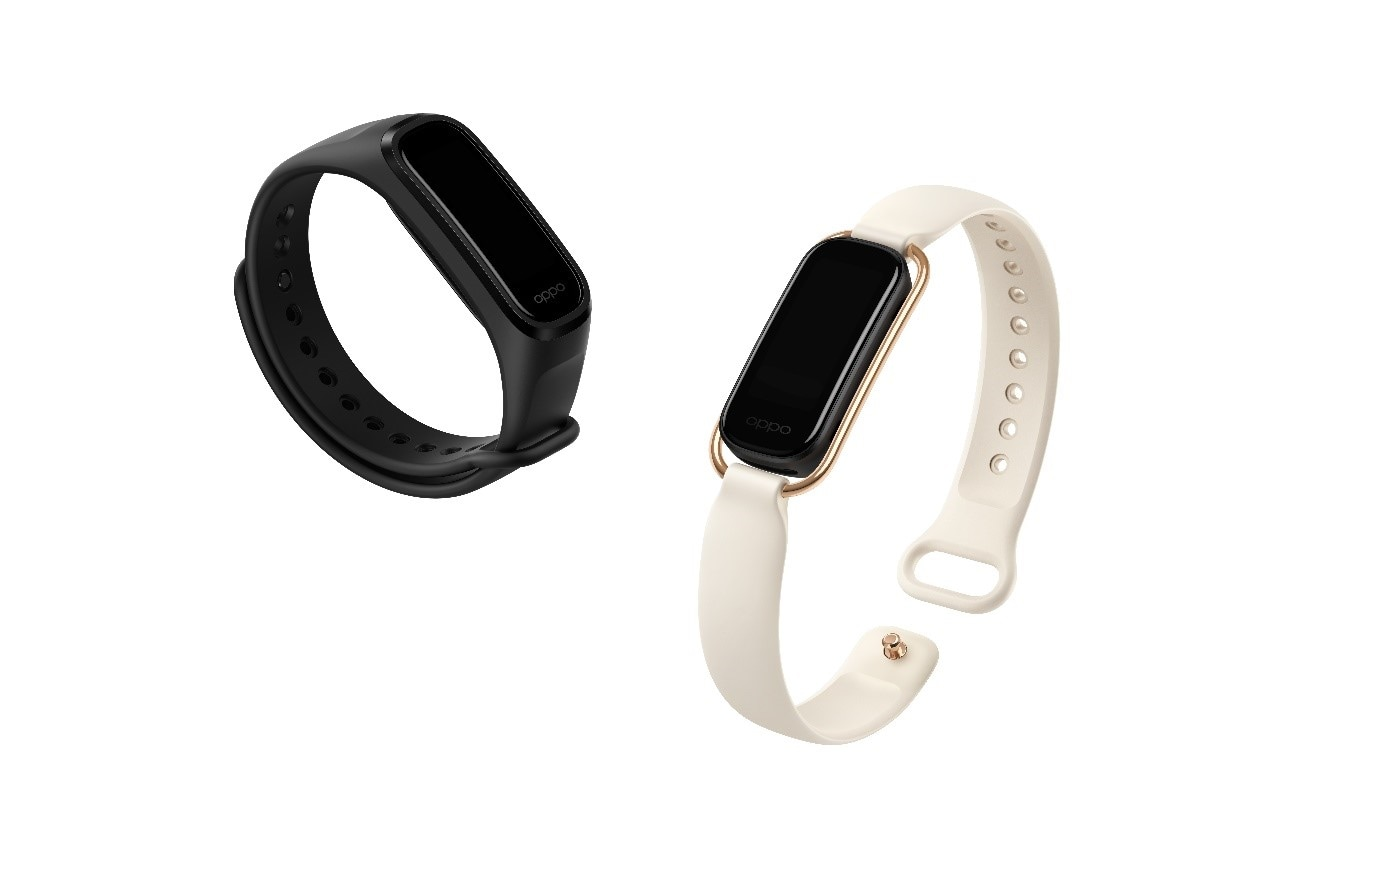 The best of health and fitness come together perfectly with the new OPPO Band